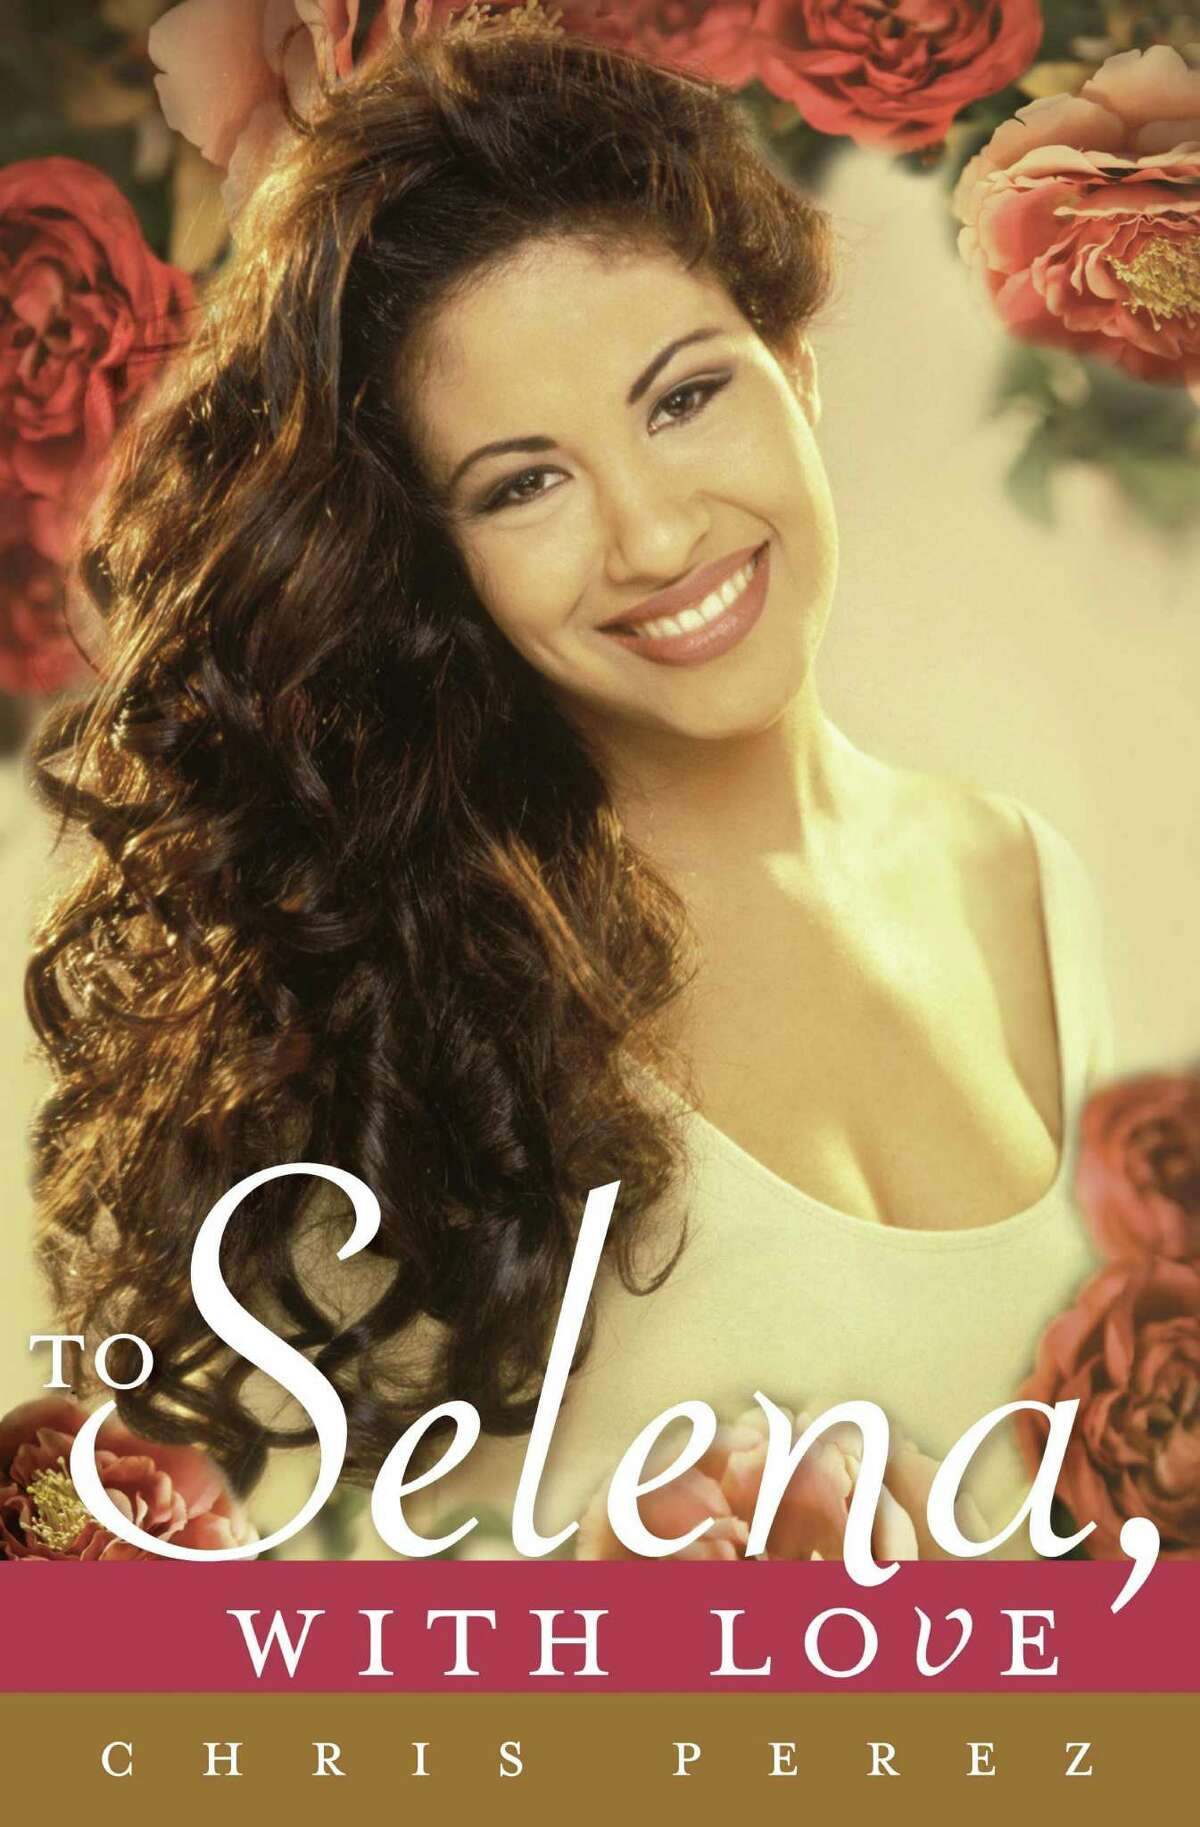 """""""To Selena, With Love,"""" by Chris Perez, widower of the late Selena, is the basis for a TV series of the same name. The book details the romance between Perez and the slain Tejano singer. It has been optioned by Endemol Shine North America."""